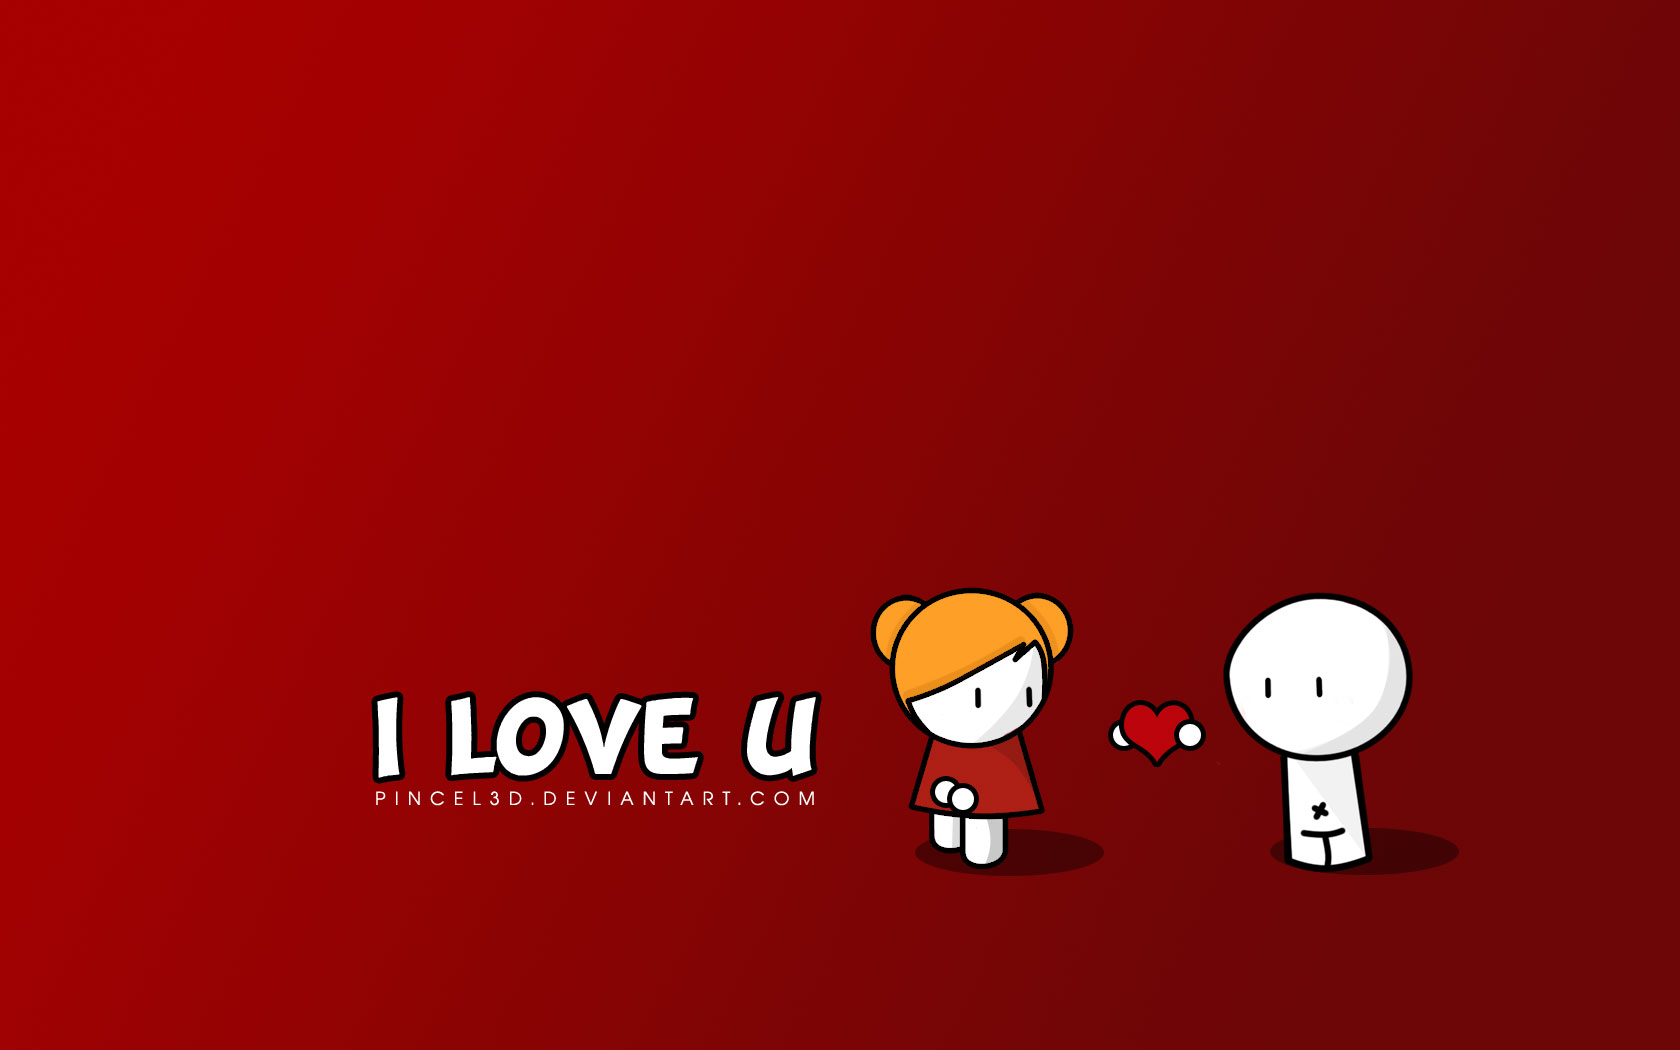 1680x1050 I Love U desktop Pc and Mac wallpaper